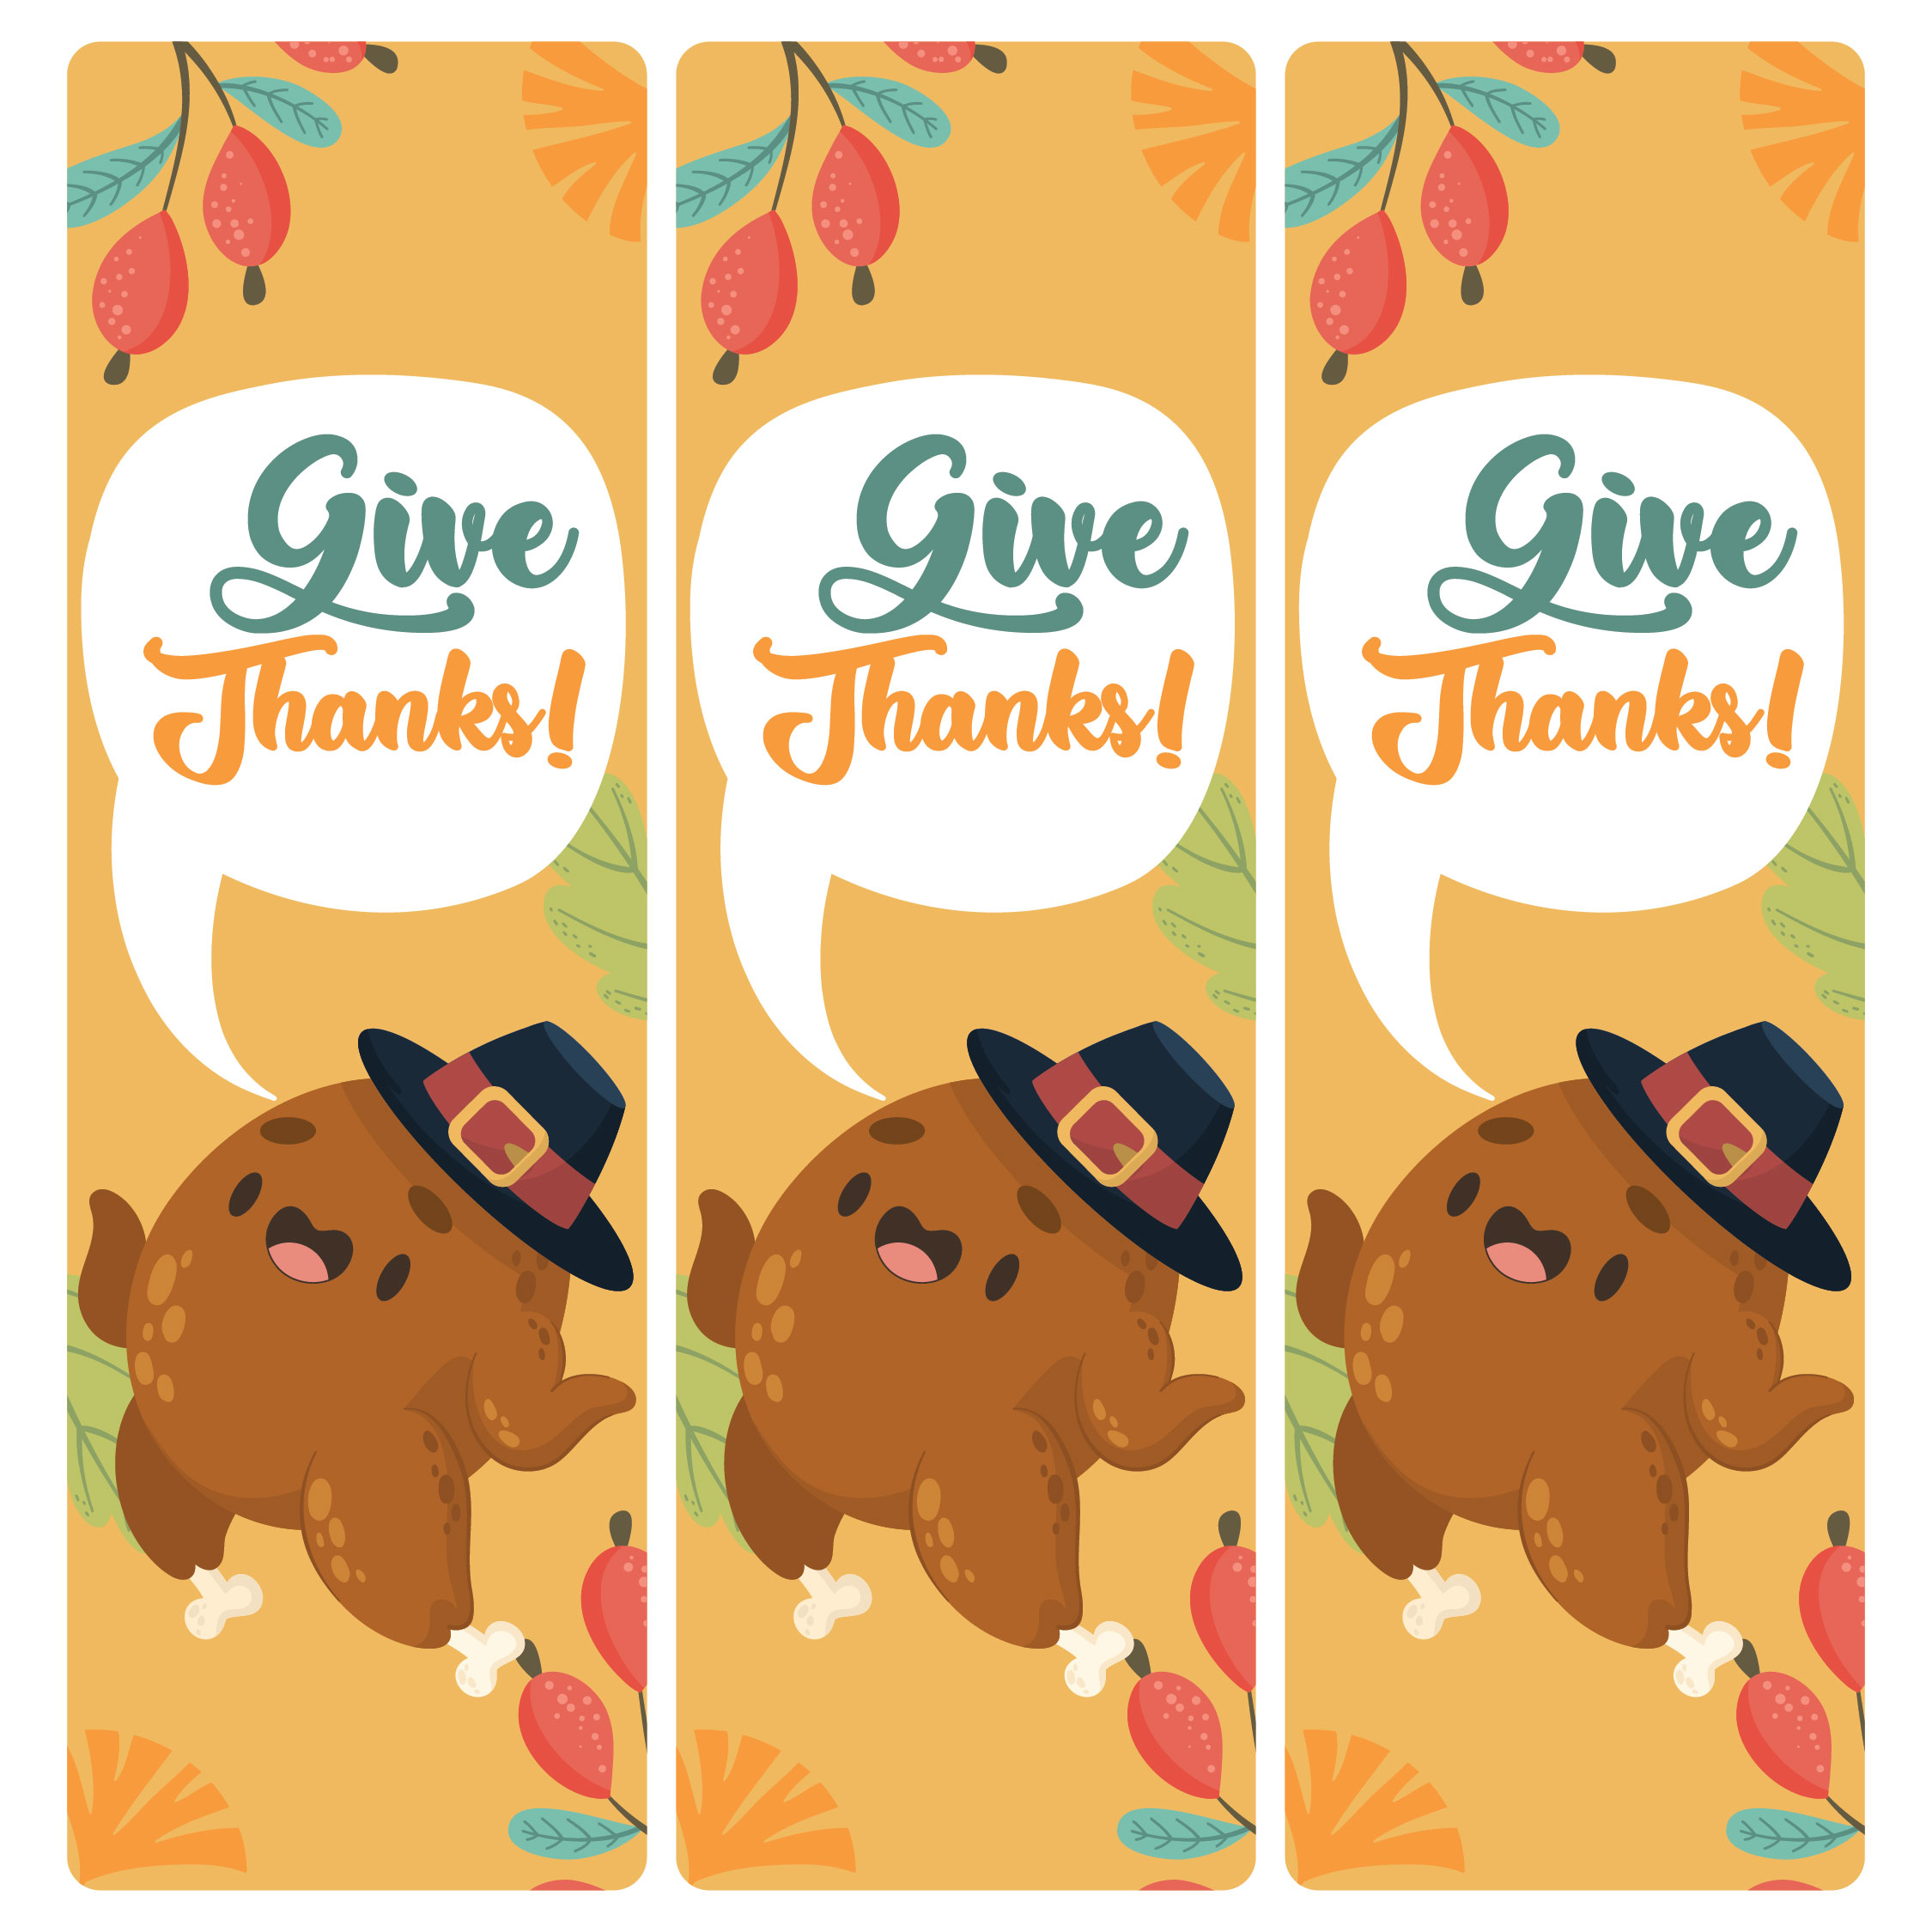 5 Best Printable Thanksgiving Bookmarks